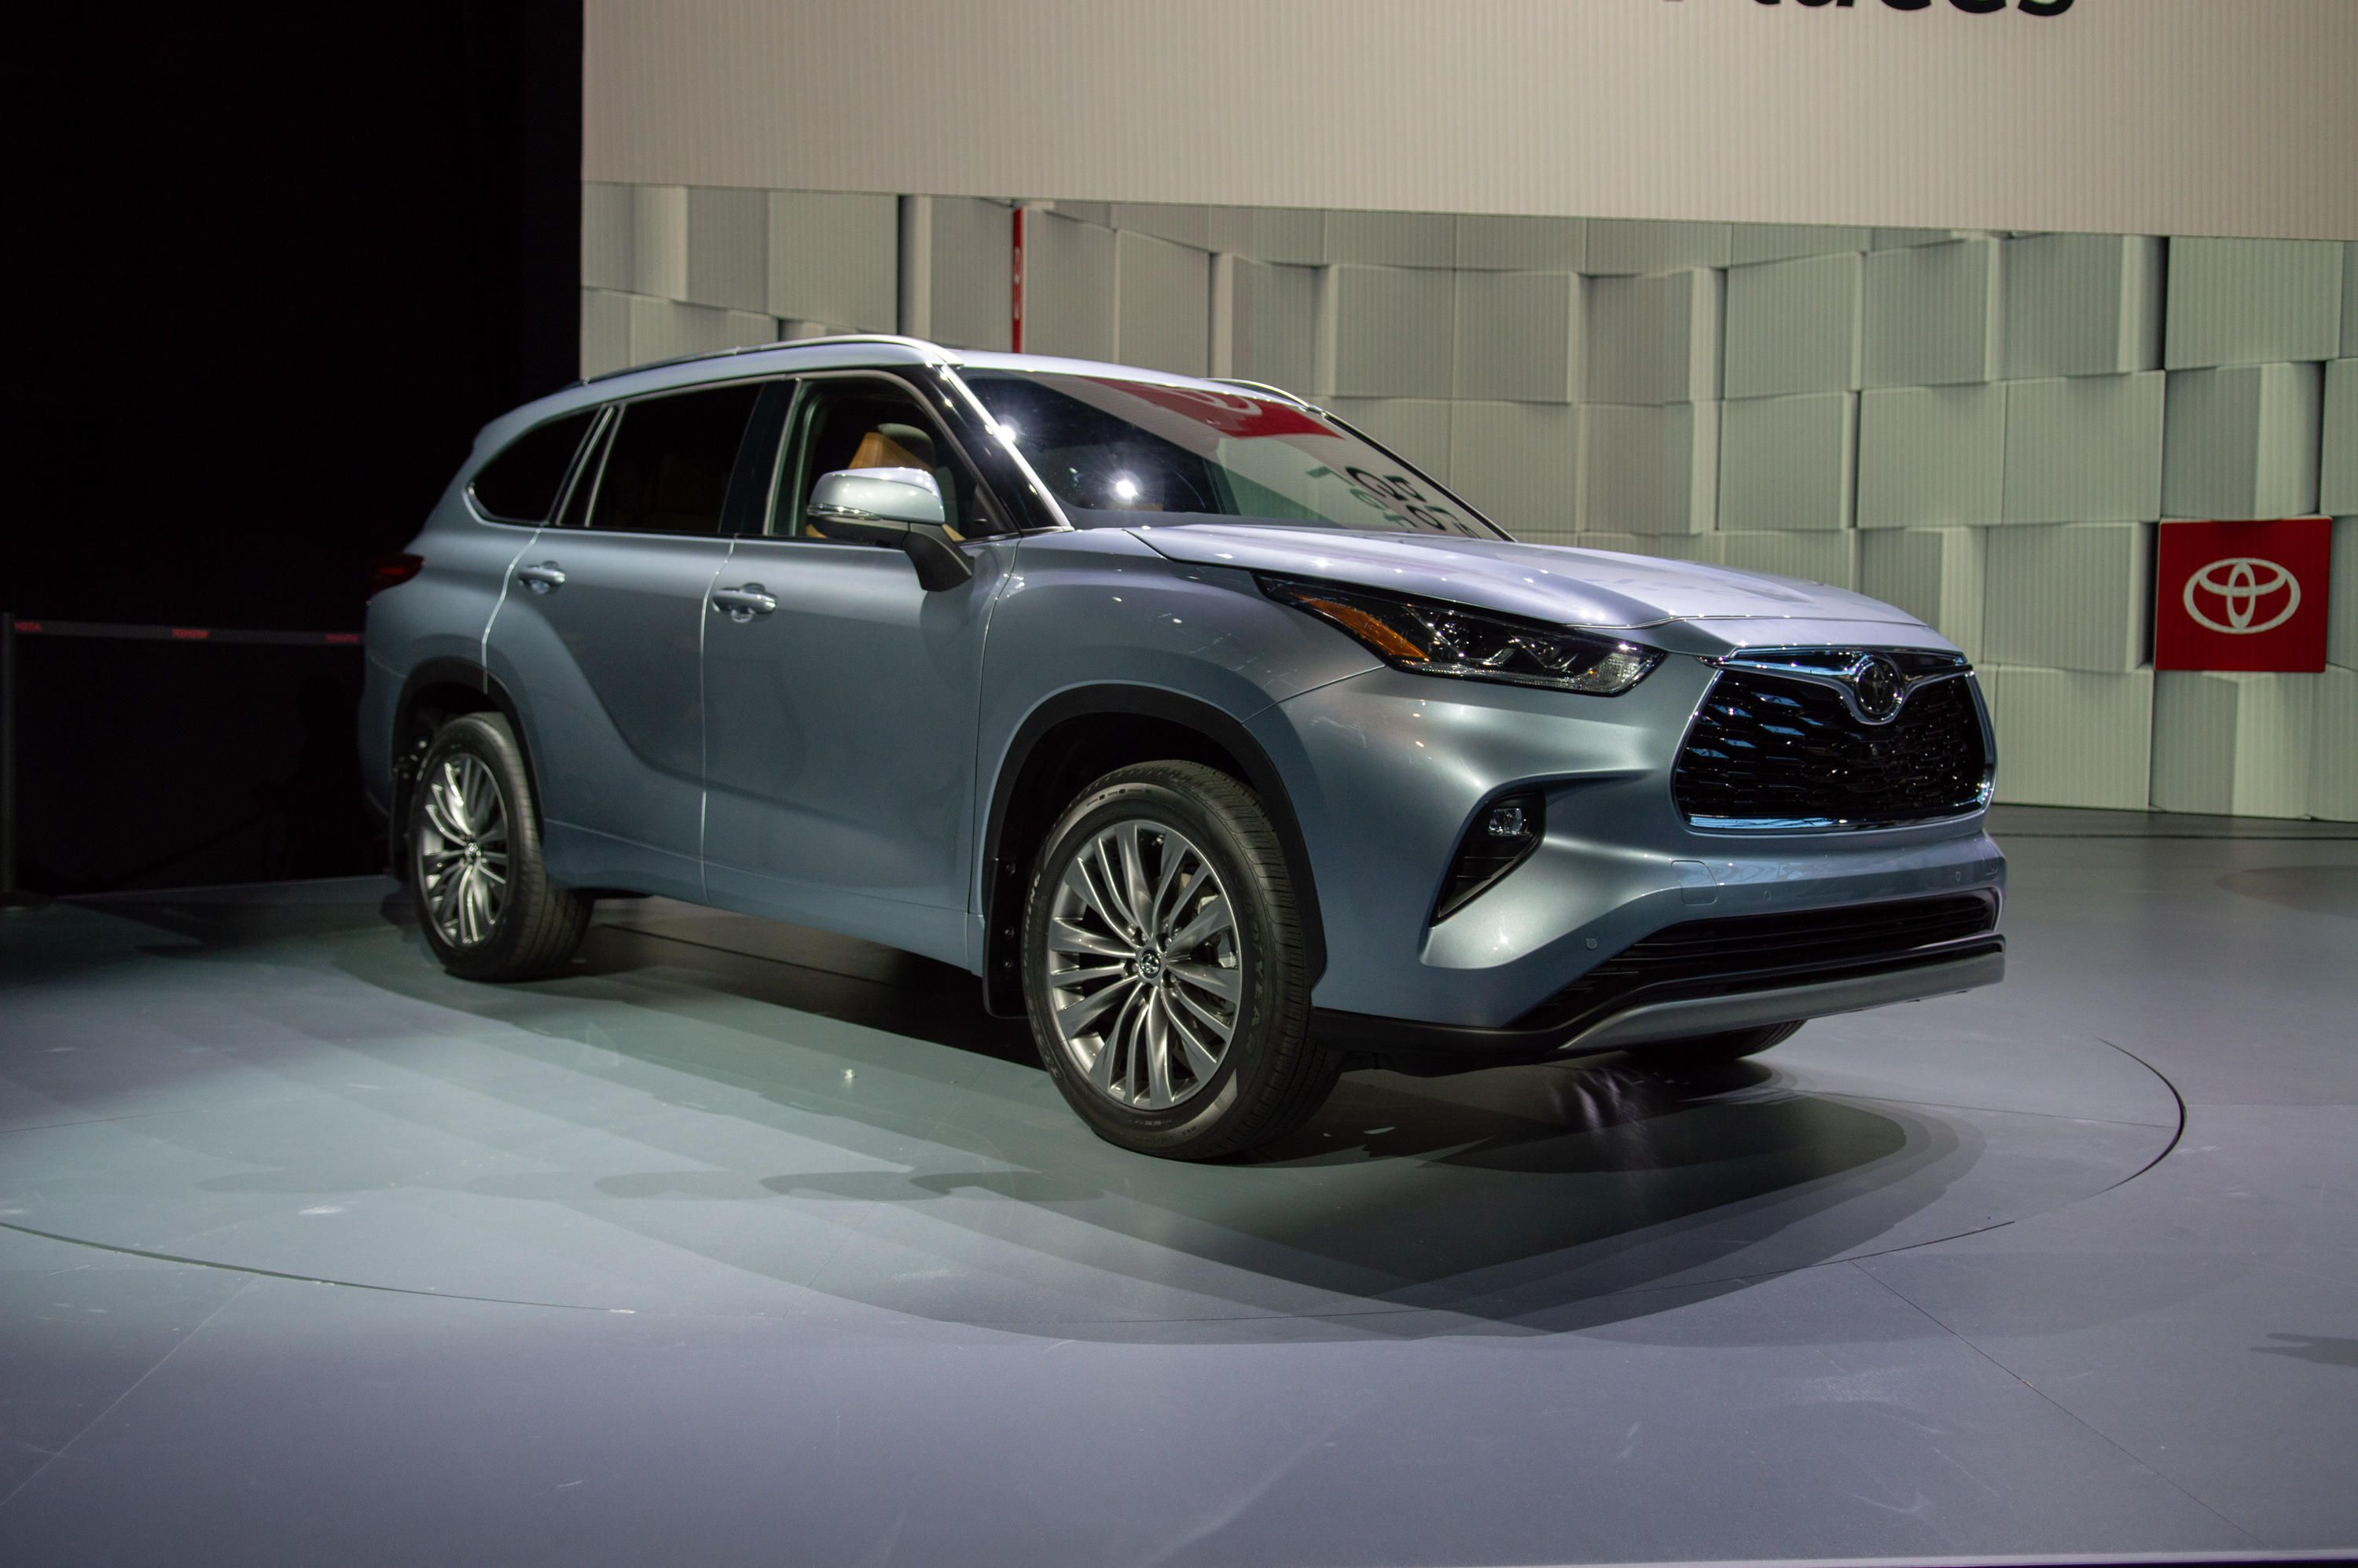 90 Great Pictures Of 2020 Toyota Highlander Engine for Pictures Of 2020 Toyota Highlander